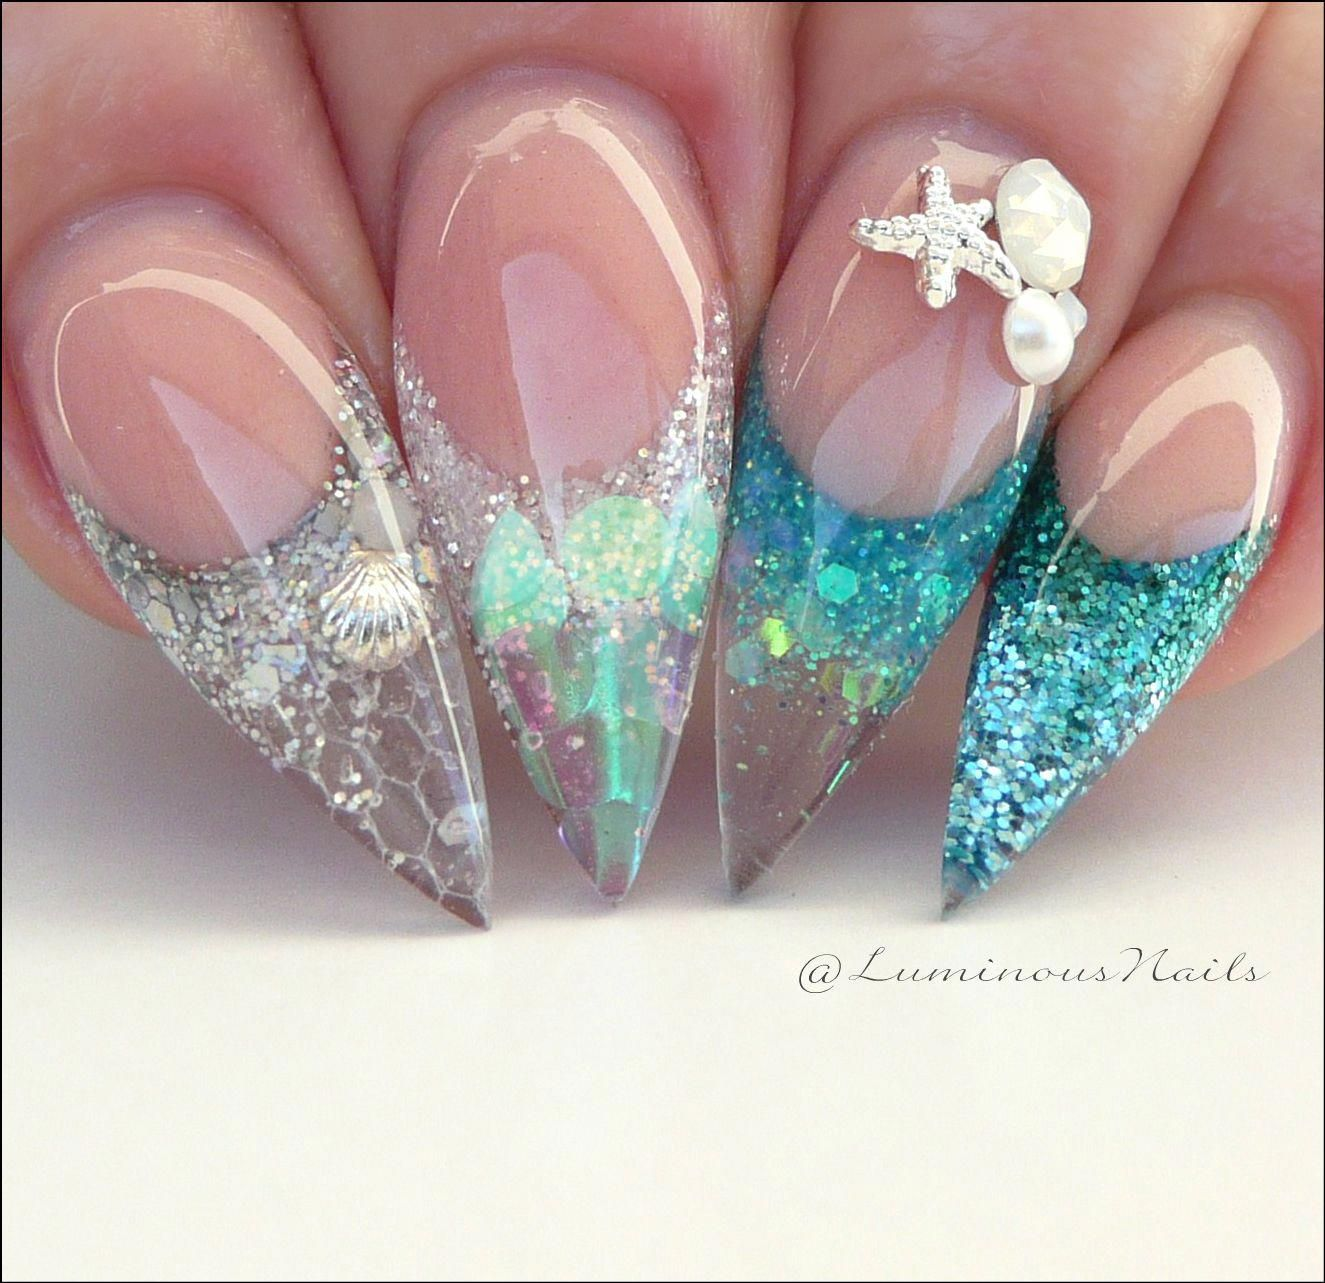 Gorgeous Mermaid Nails. Sculptured Acrylic Stiletto Nails. #mermaidnails - drorage.thevergebrand.com